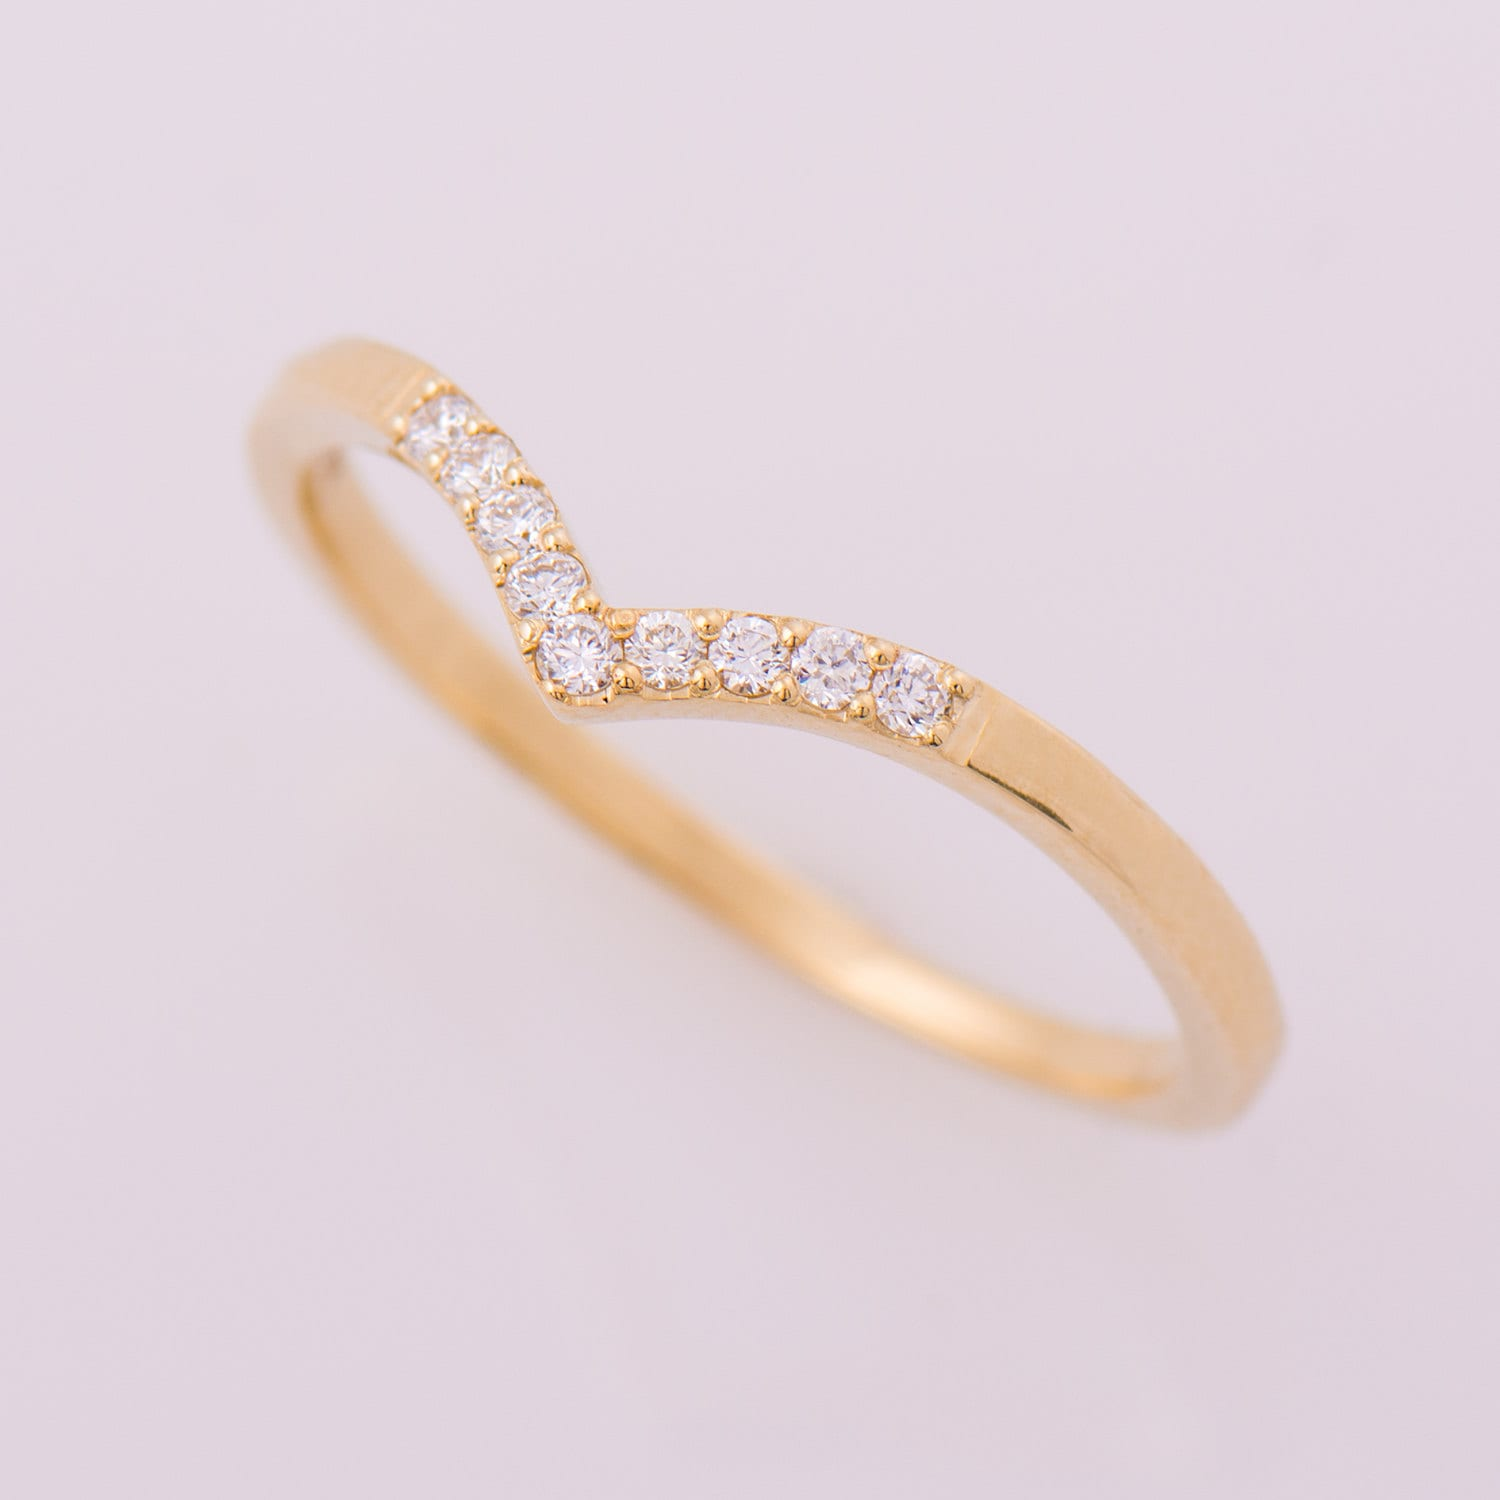 h wedding clarity color with diamonds pave thin bands white dp micro gold com diamond round i band amazon